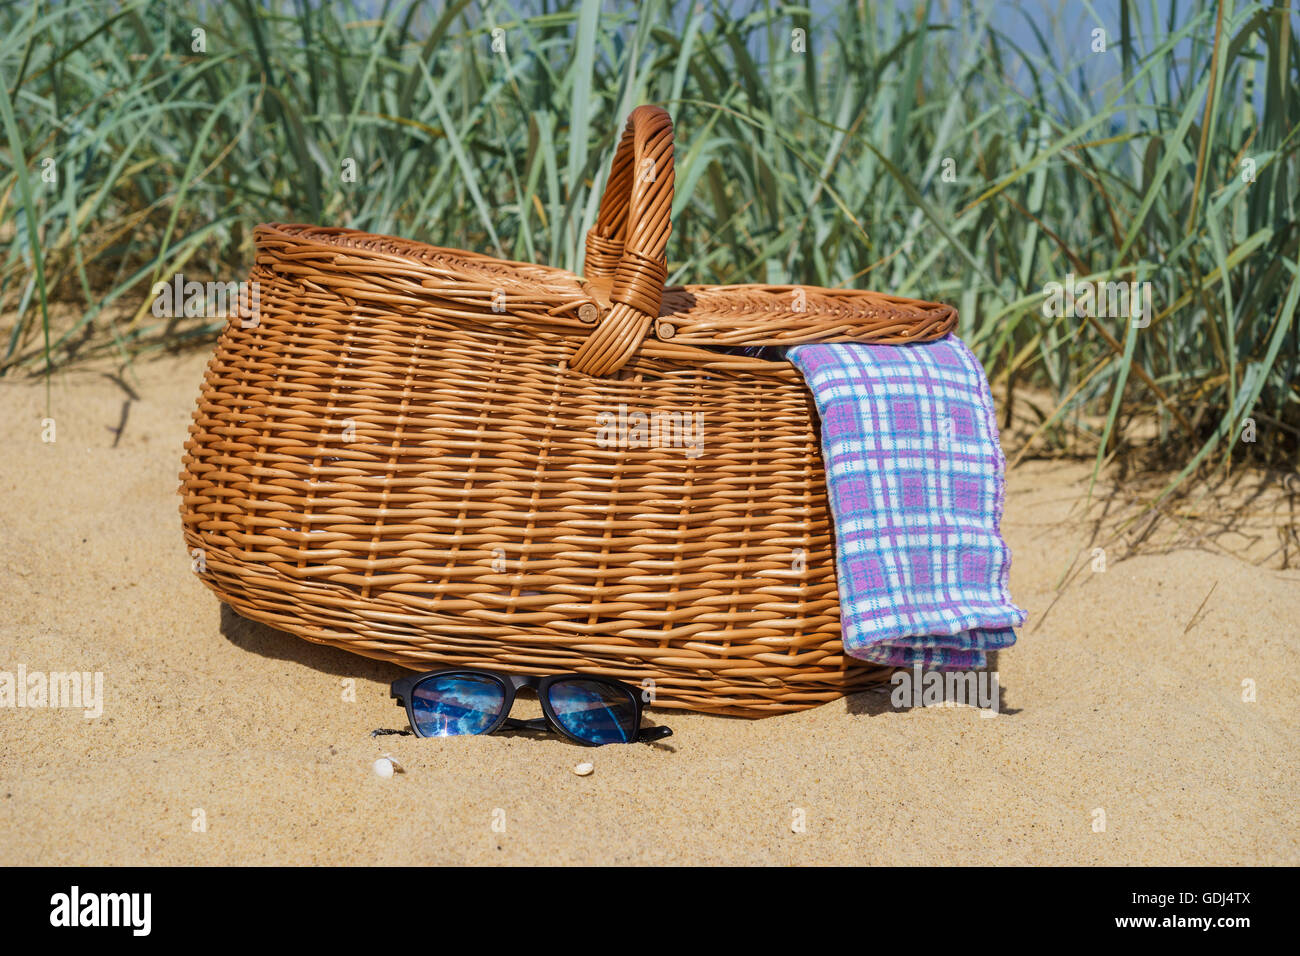 Picnic basket with blue white checkered napkin and sunglasses on sandy beach. Weekend break concept Stock Photo